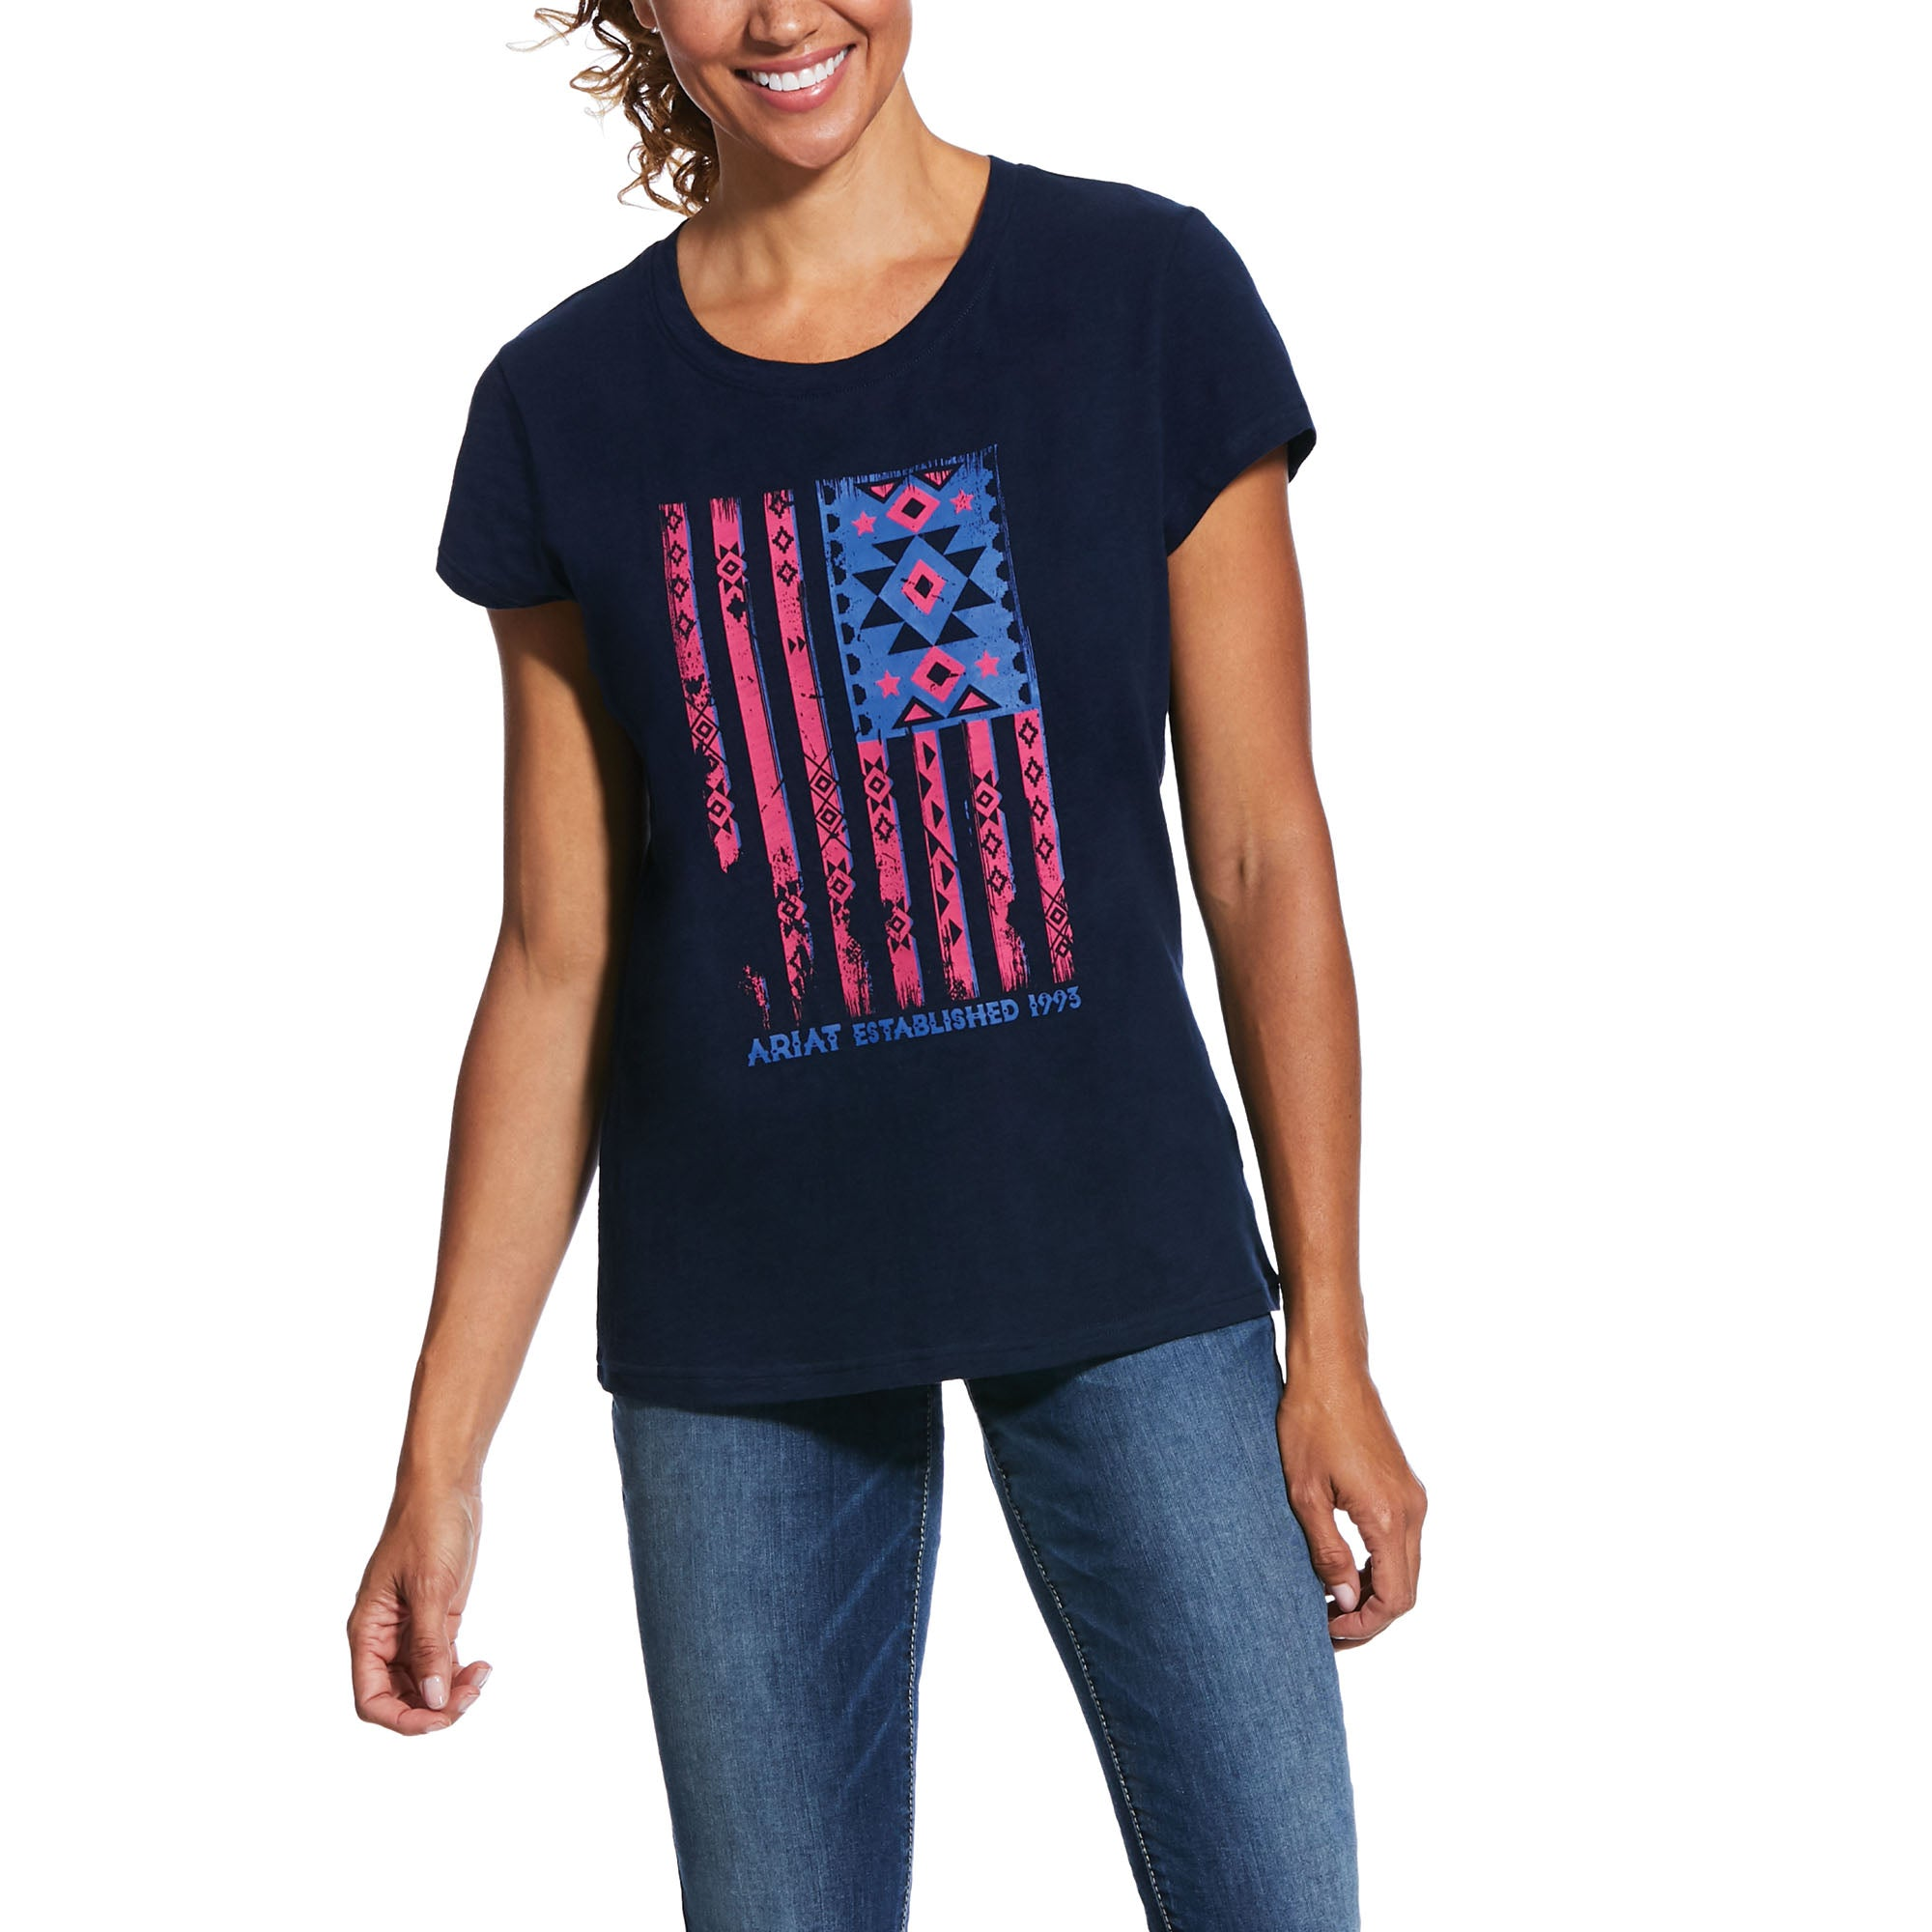 10031844 Ariat Women's Spirit Tee Navy